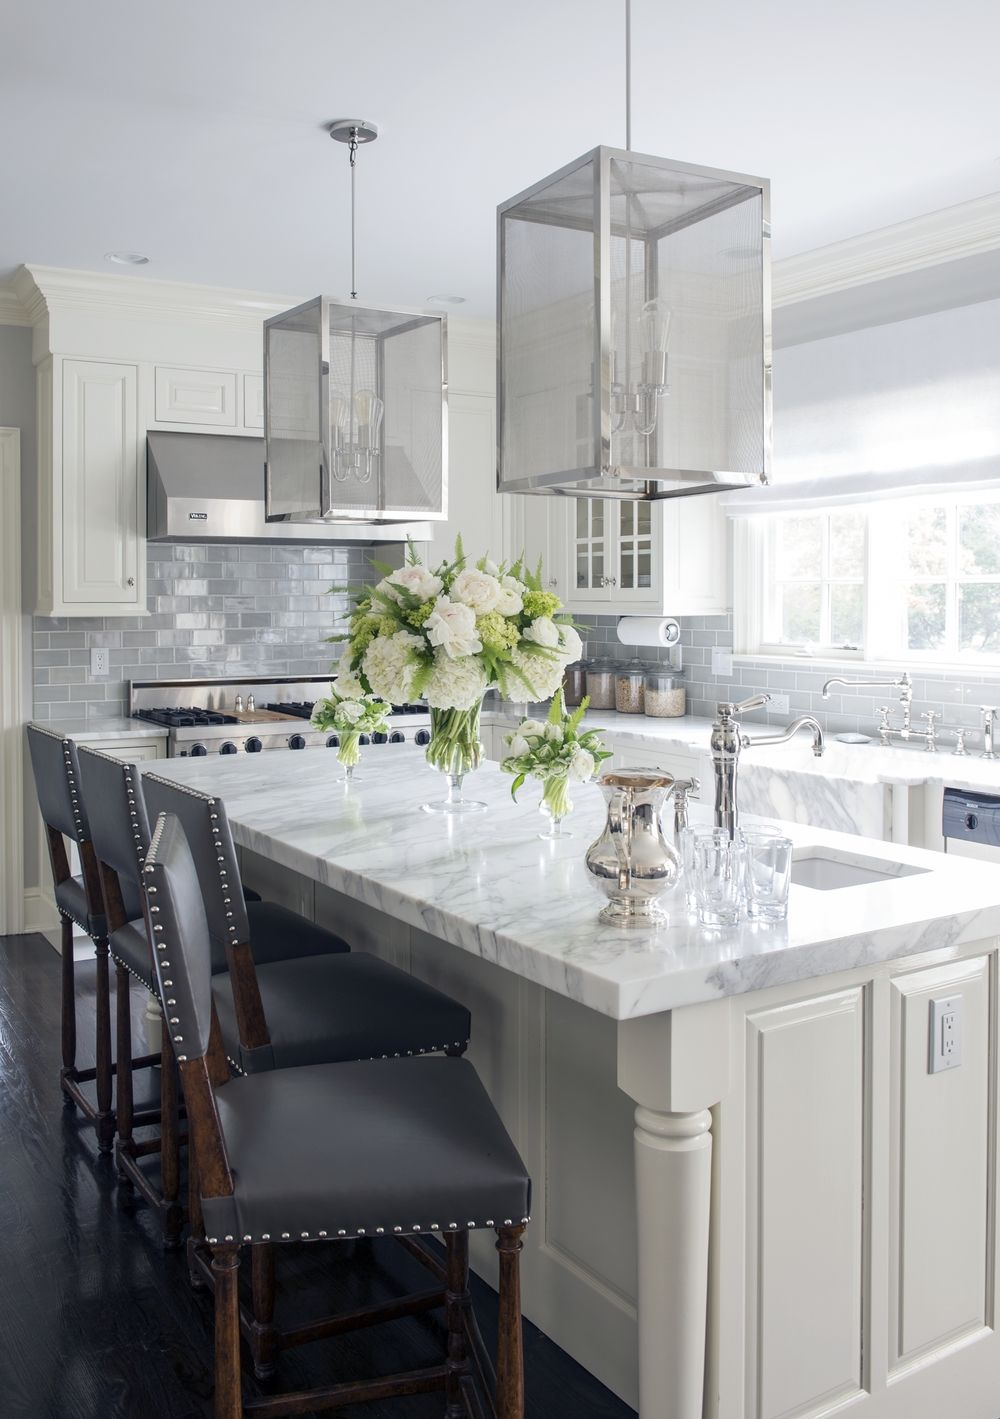 Pin by jenn nardello on big cash pinterest leather kitchens and